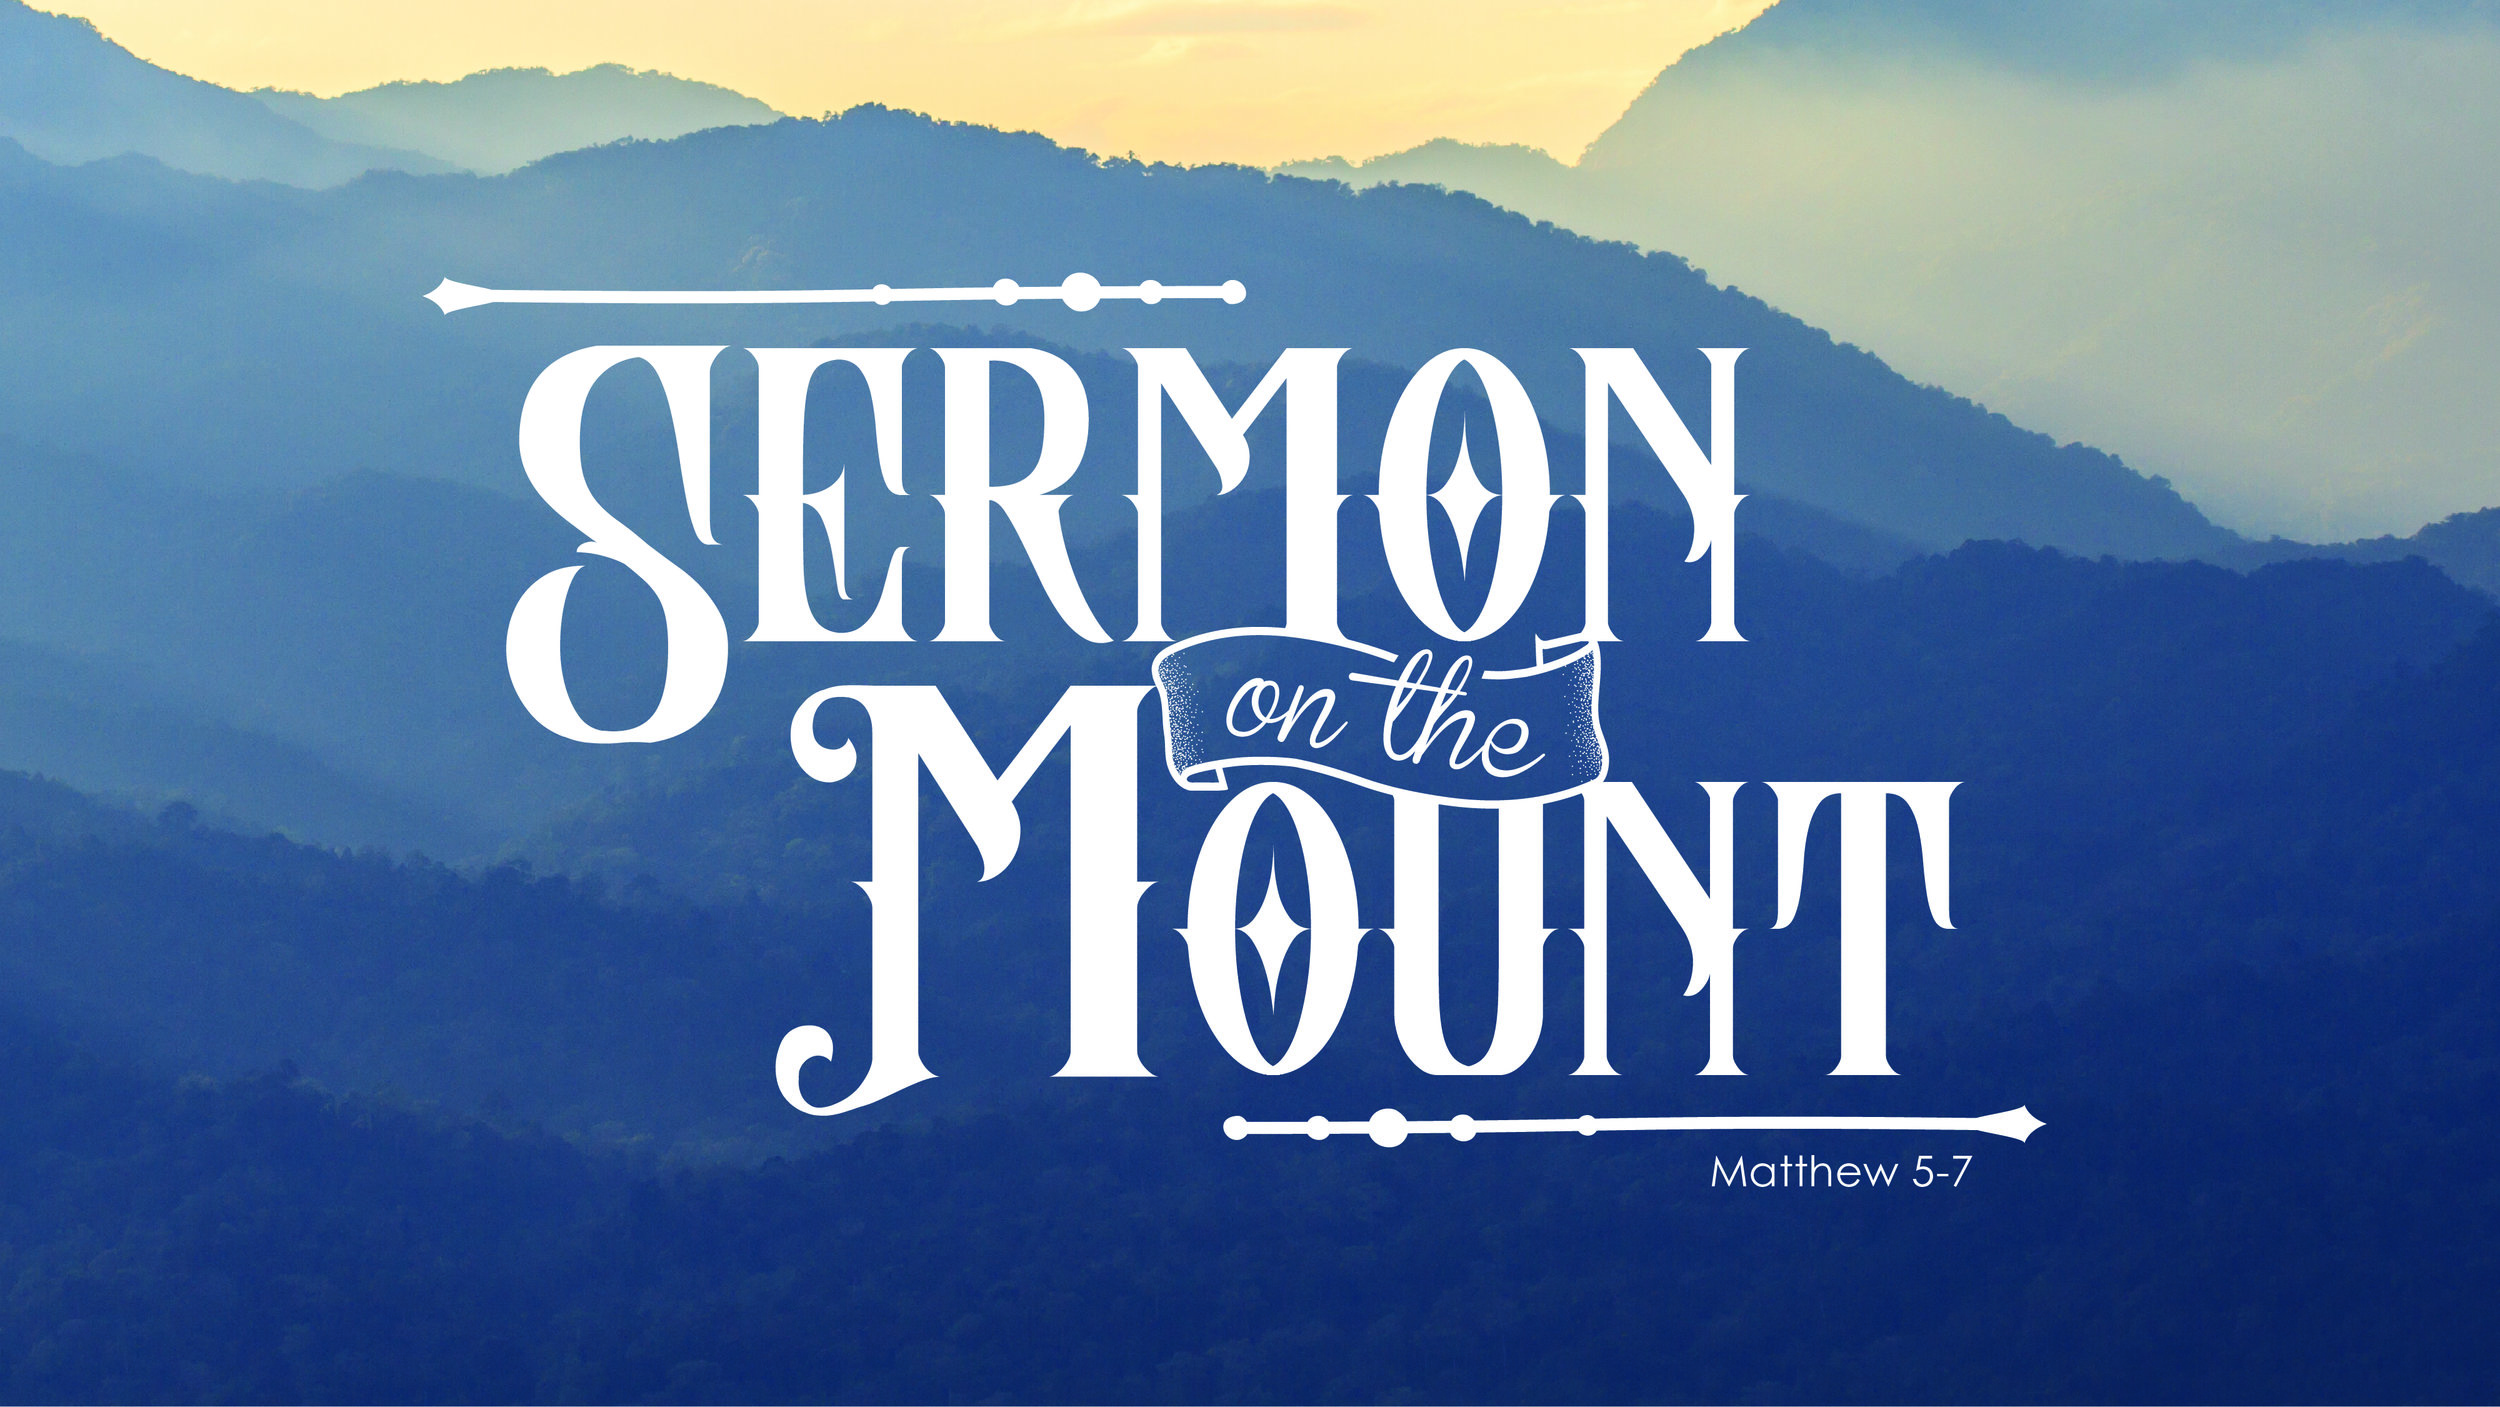 Sermon on the Mount: Matthew 5-7  - Summer 2019